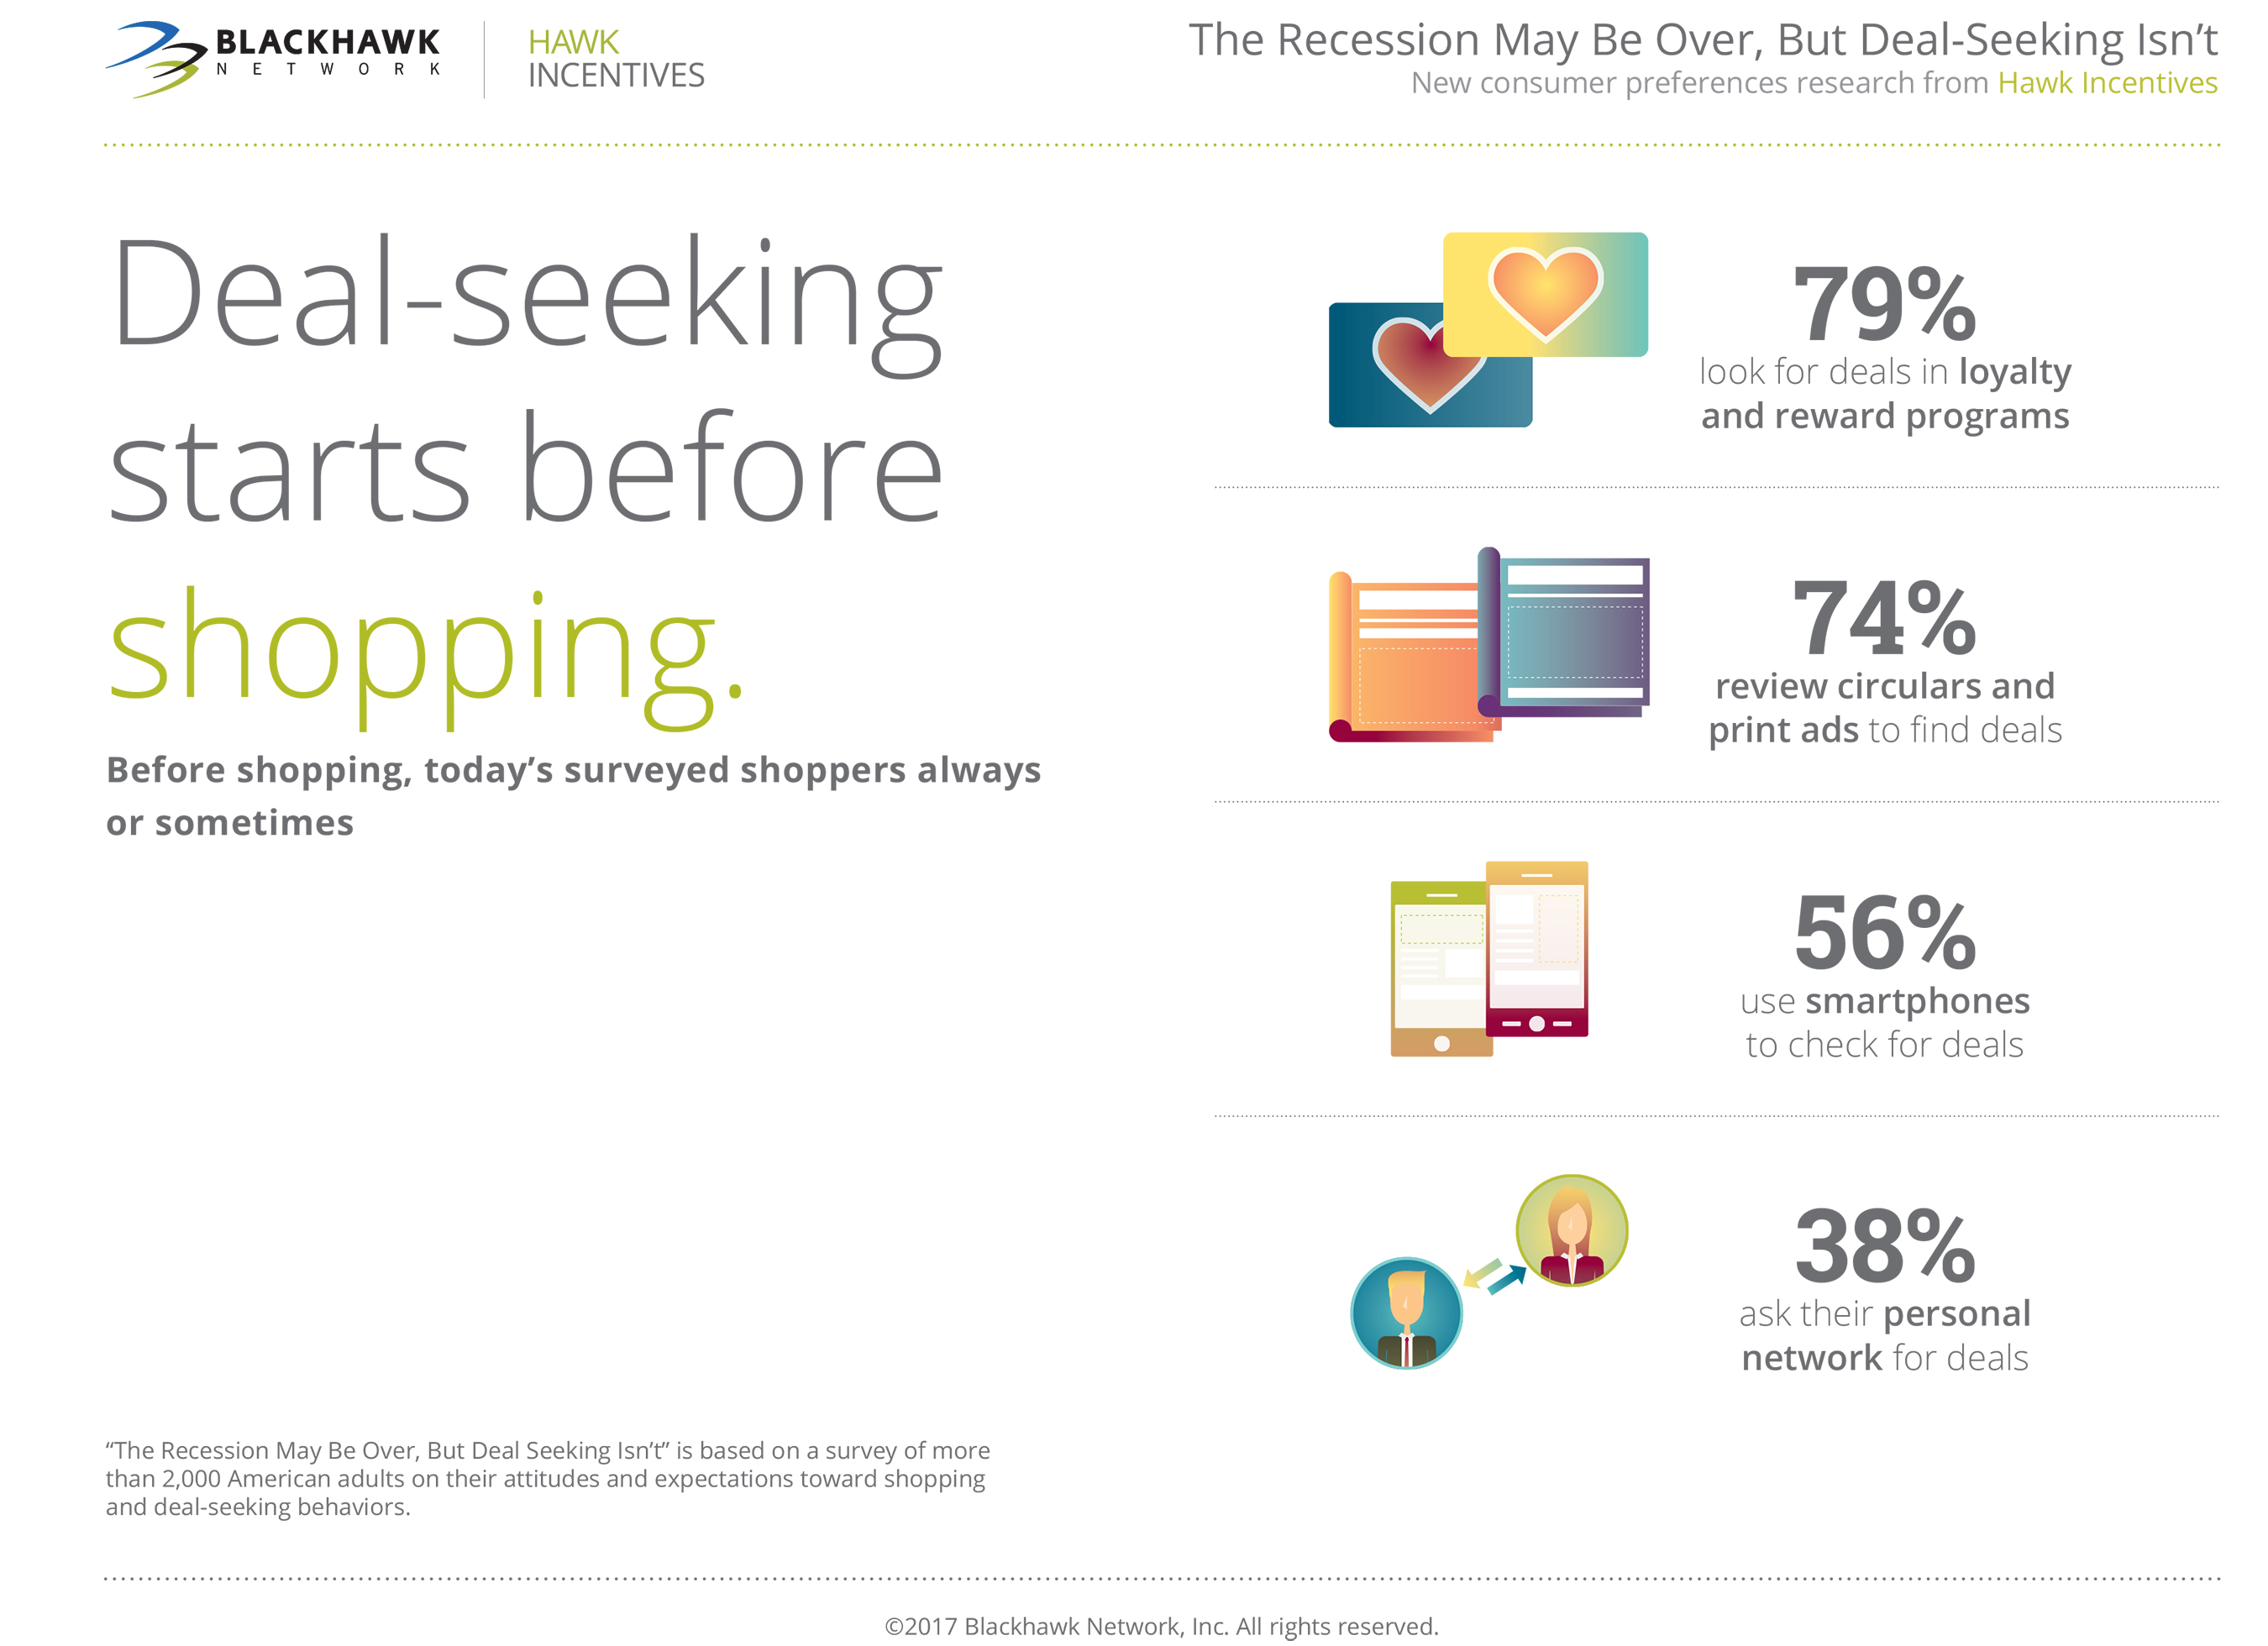 Consumers do their research before and during the shopping process to find the best deals